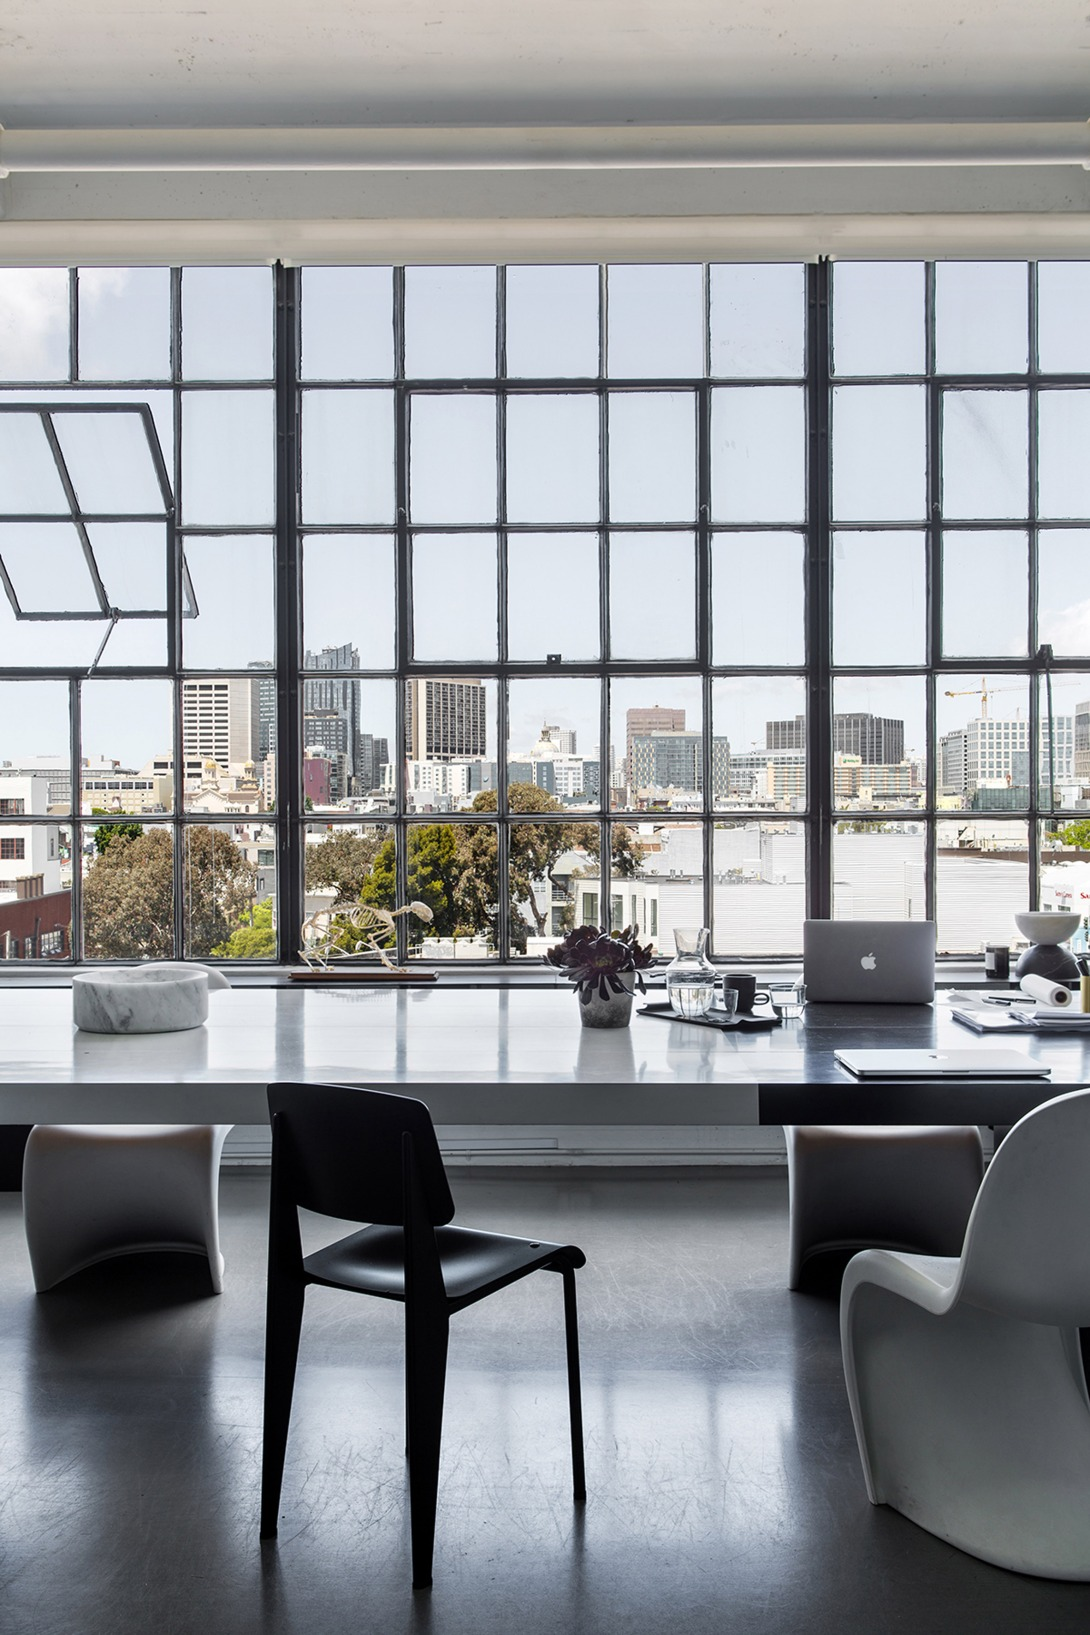 nicole-hollis-san-francisco-studio-self-designed-interior-monochrome_dezeen_2364_col_3